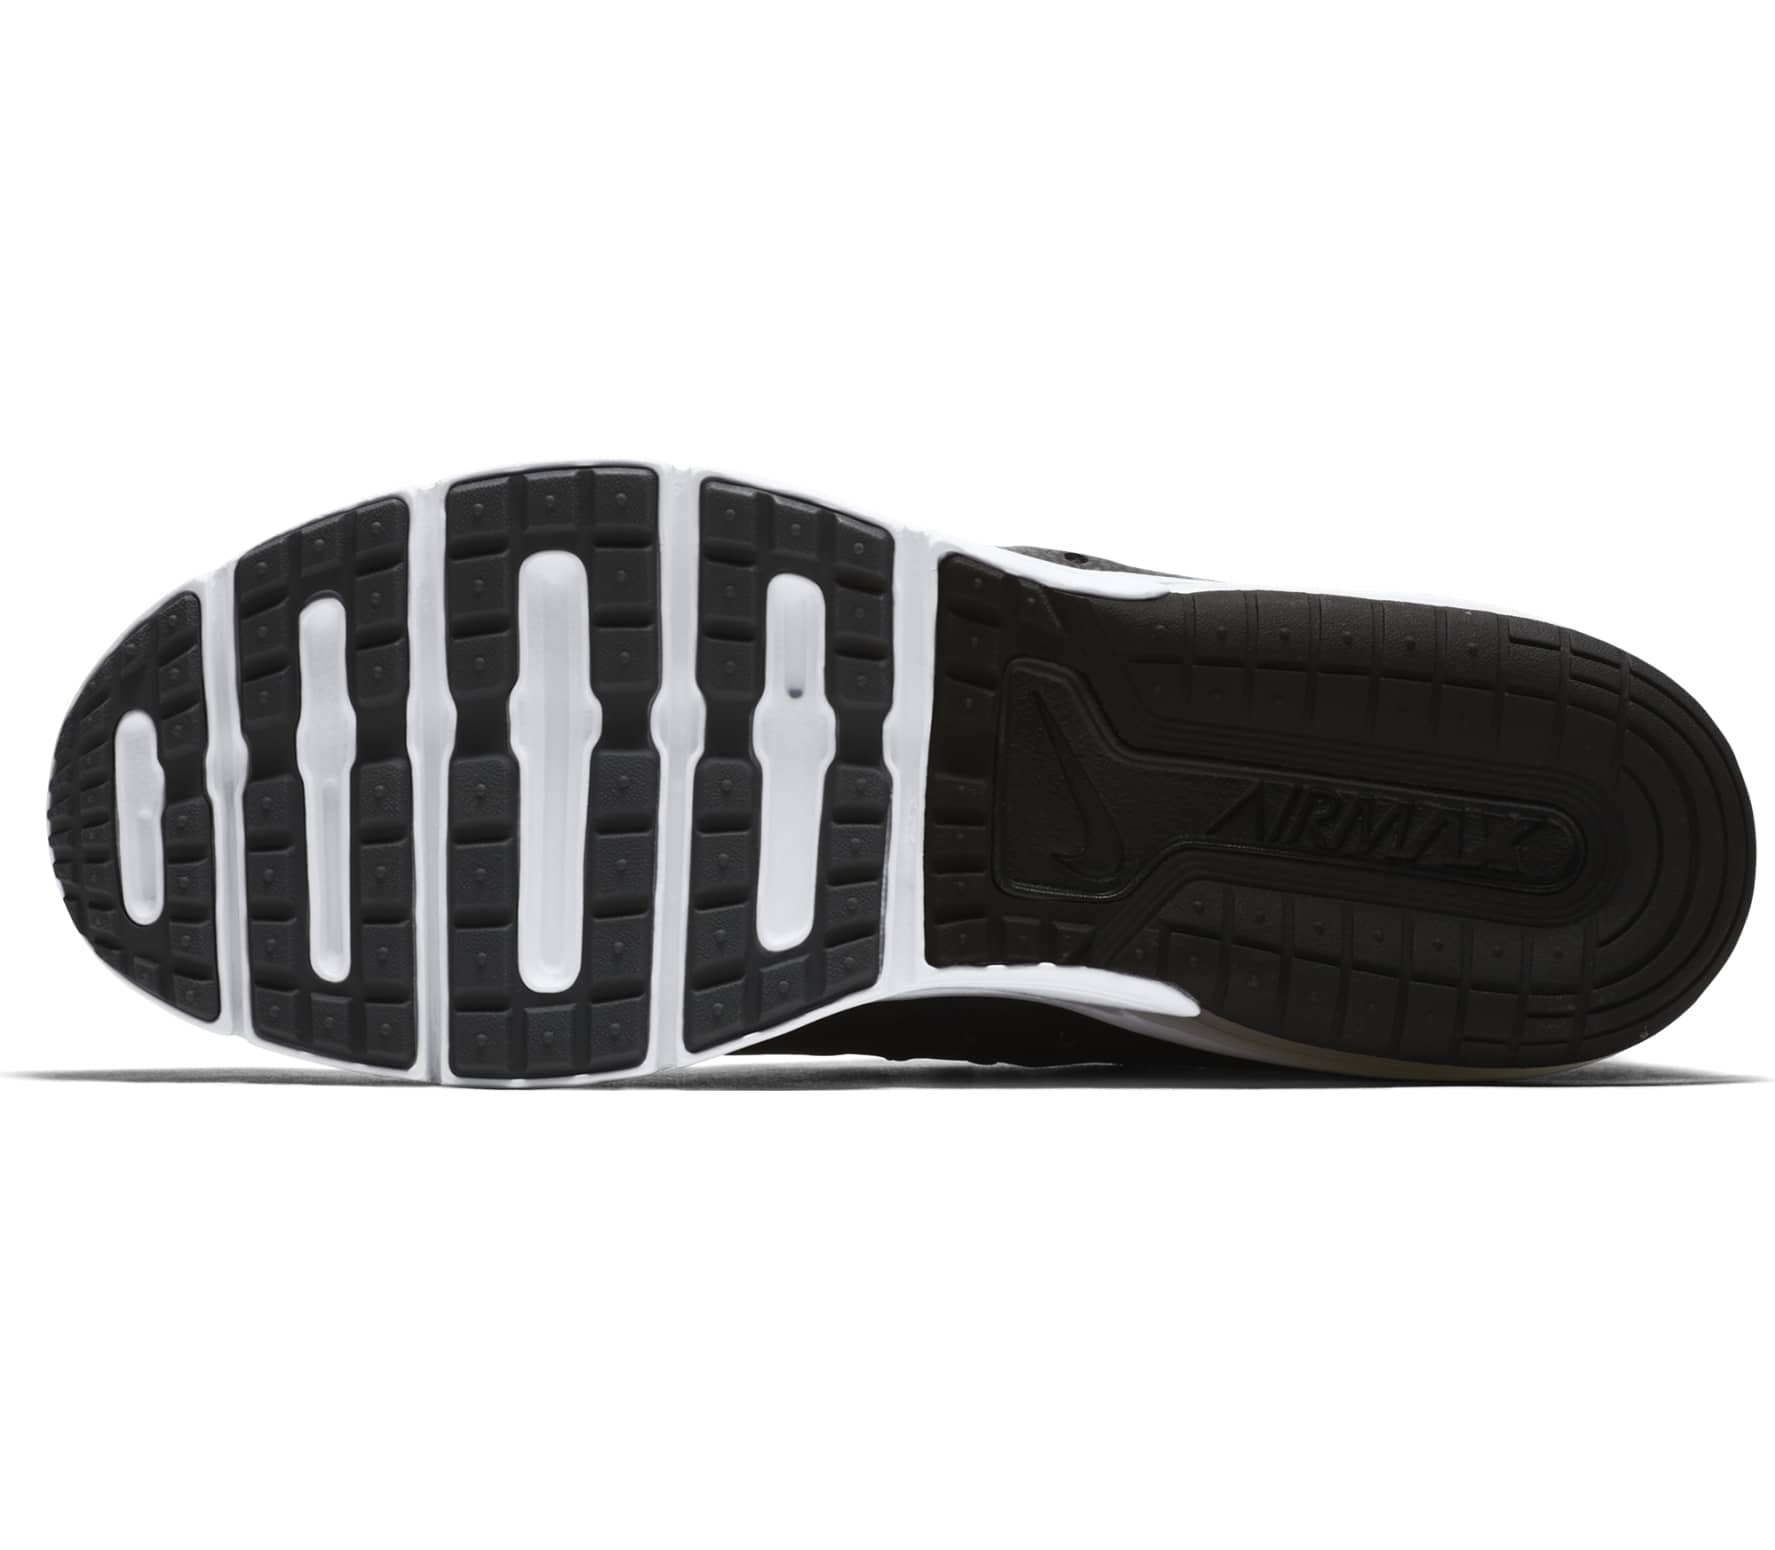 Nike Air Max Sequent 3 women's running shoes (black/white) buy